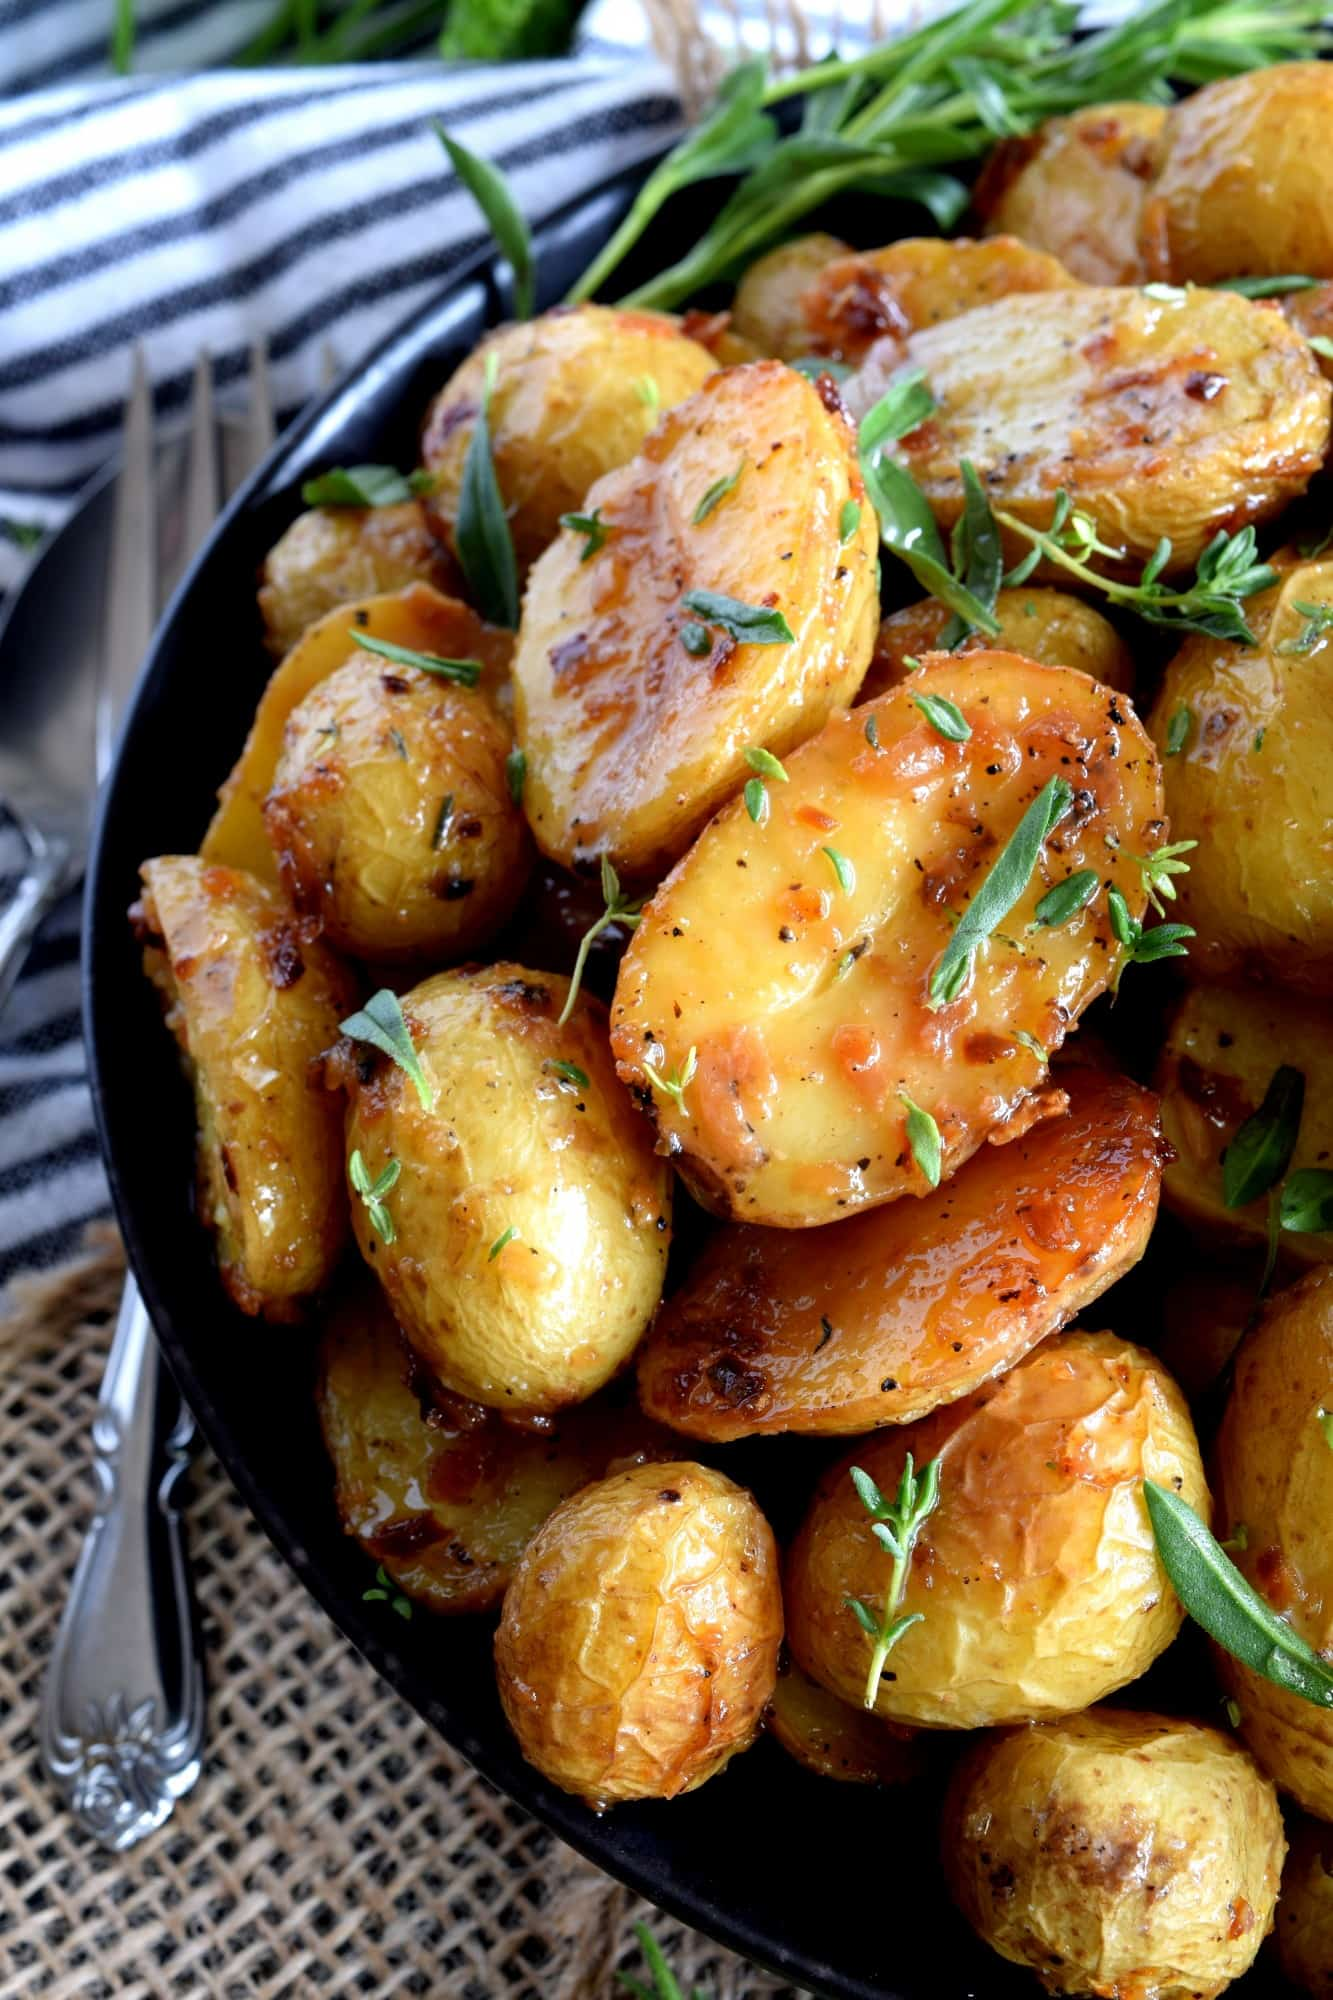 Roasted Potatoes With Herbs And Crunchy Onions